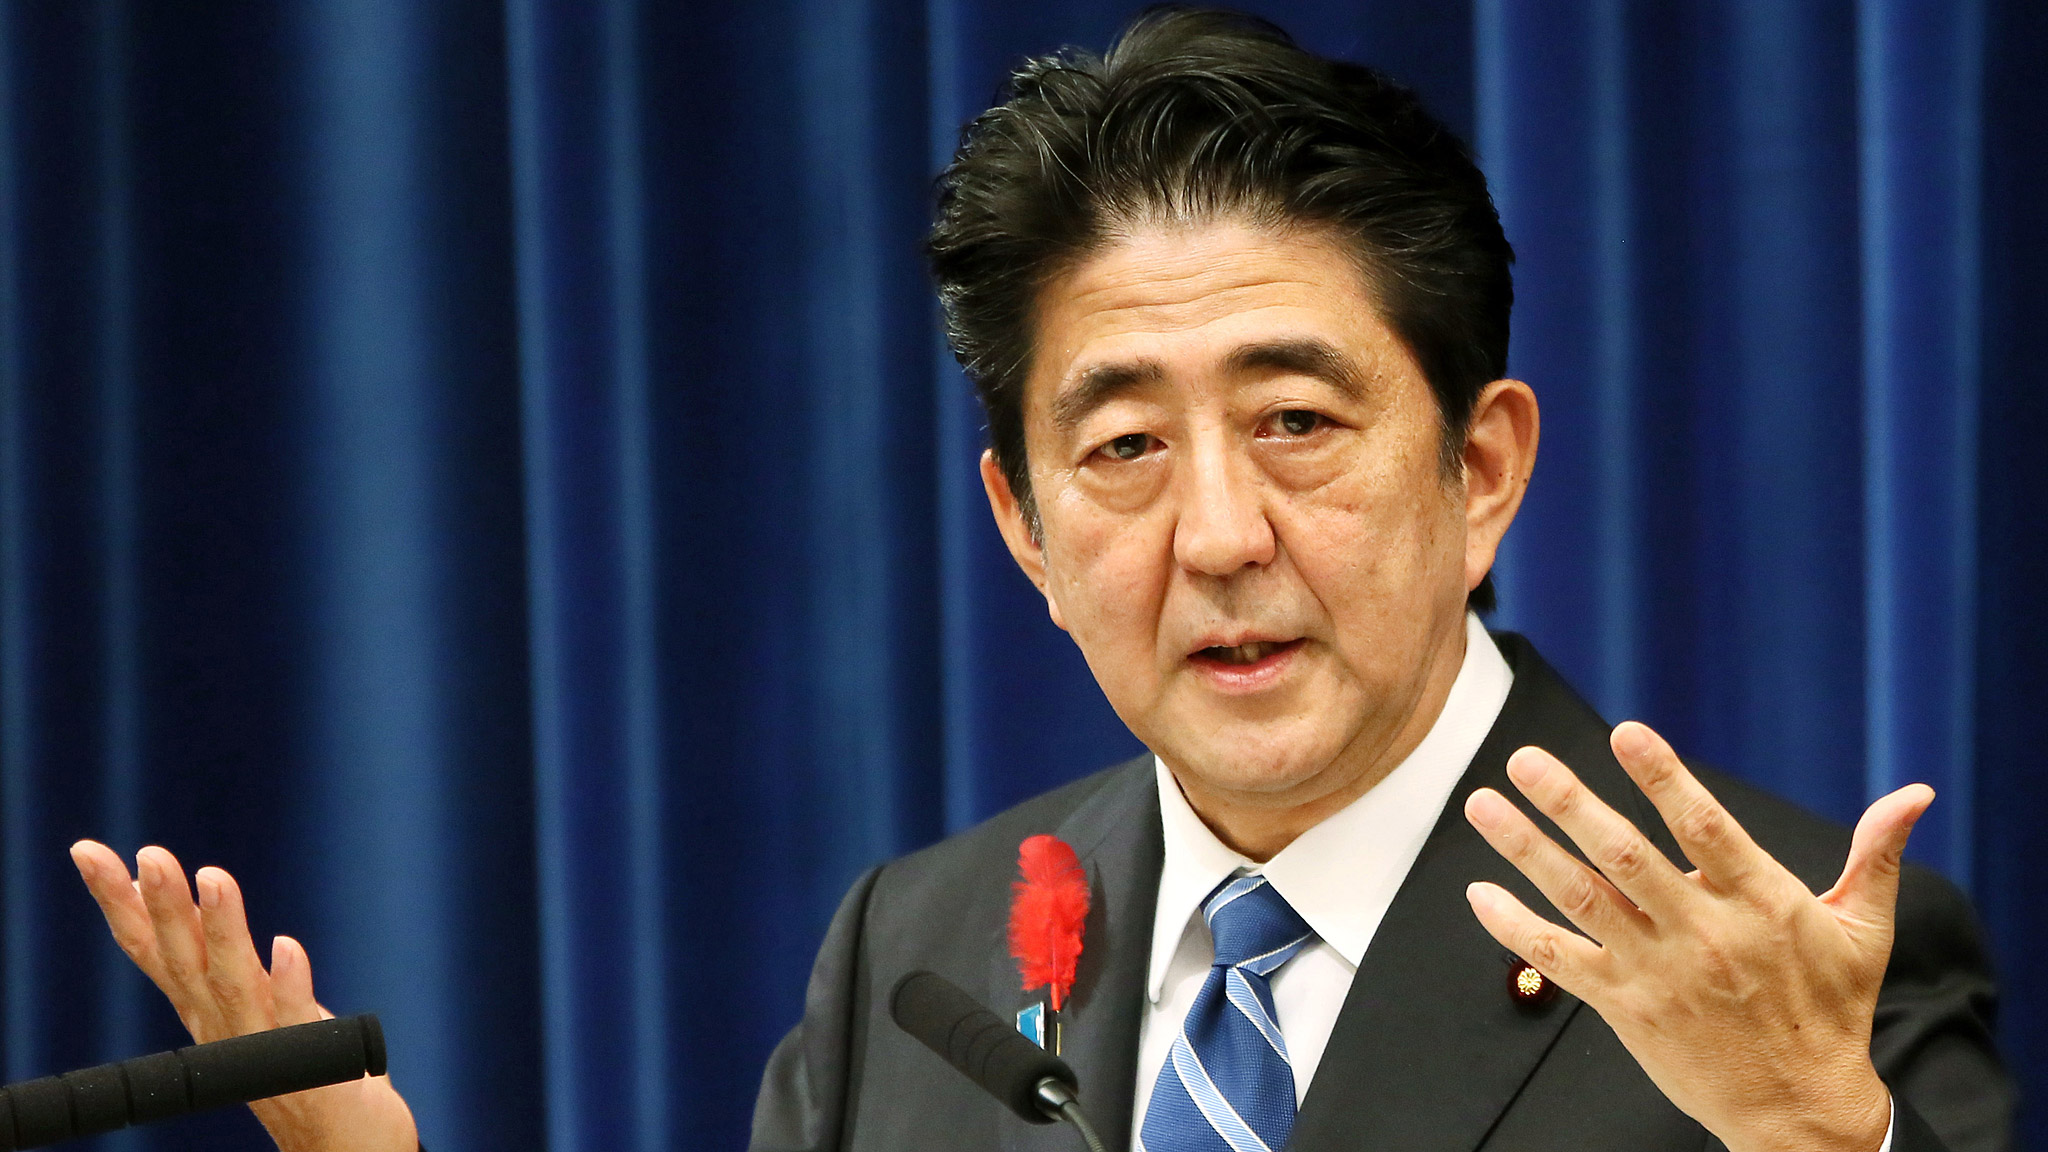 Il premier giapponese Shinzo Abe / source Financial Times